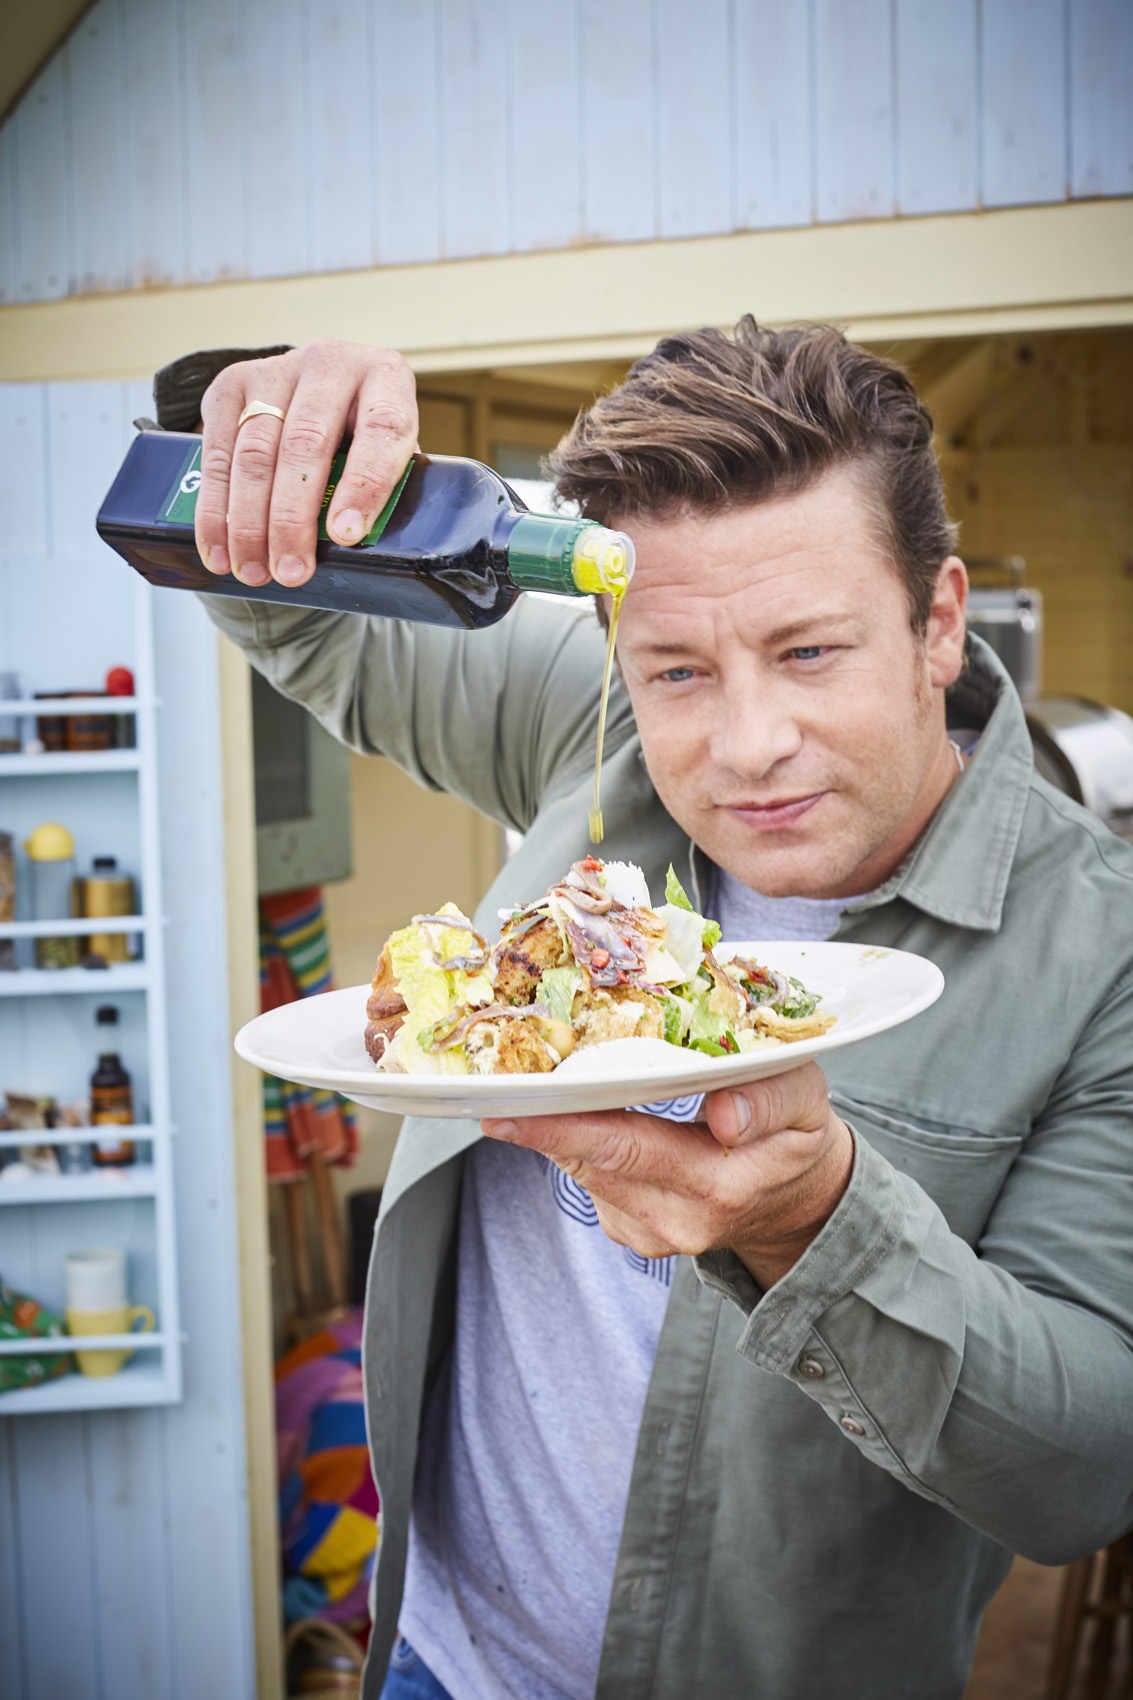 SteveRyan_Photographer_Portraits_People_Reportage_Salad_Chicken_JamieOliver_127